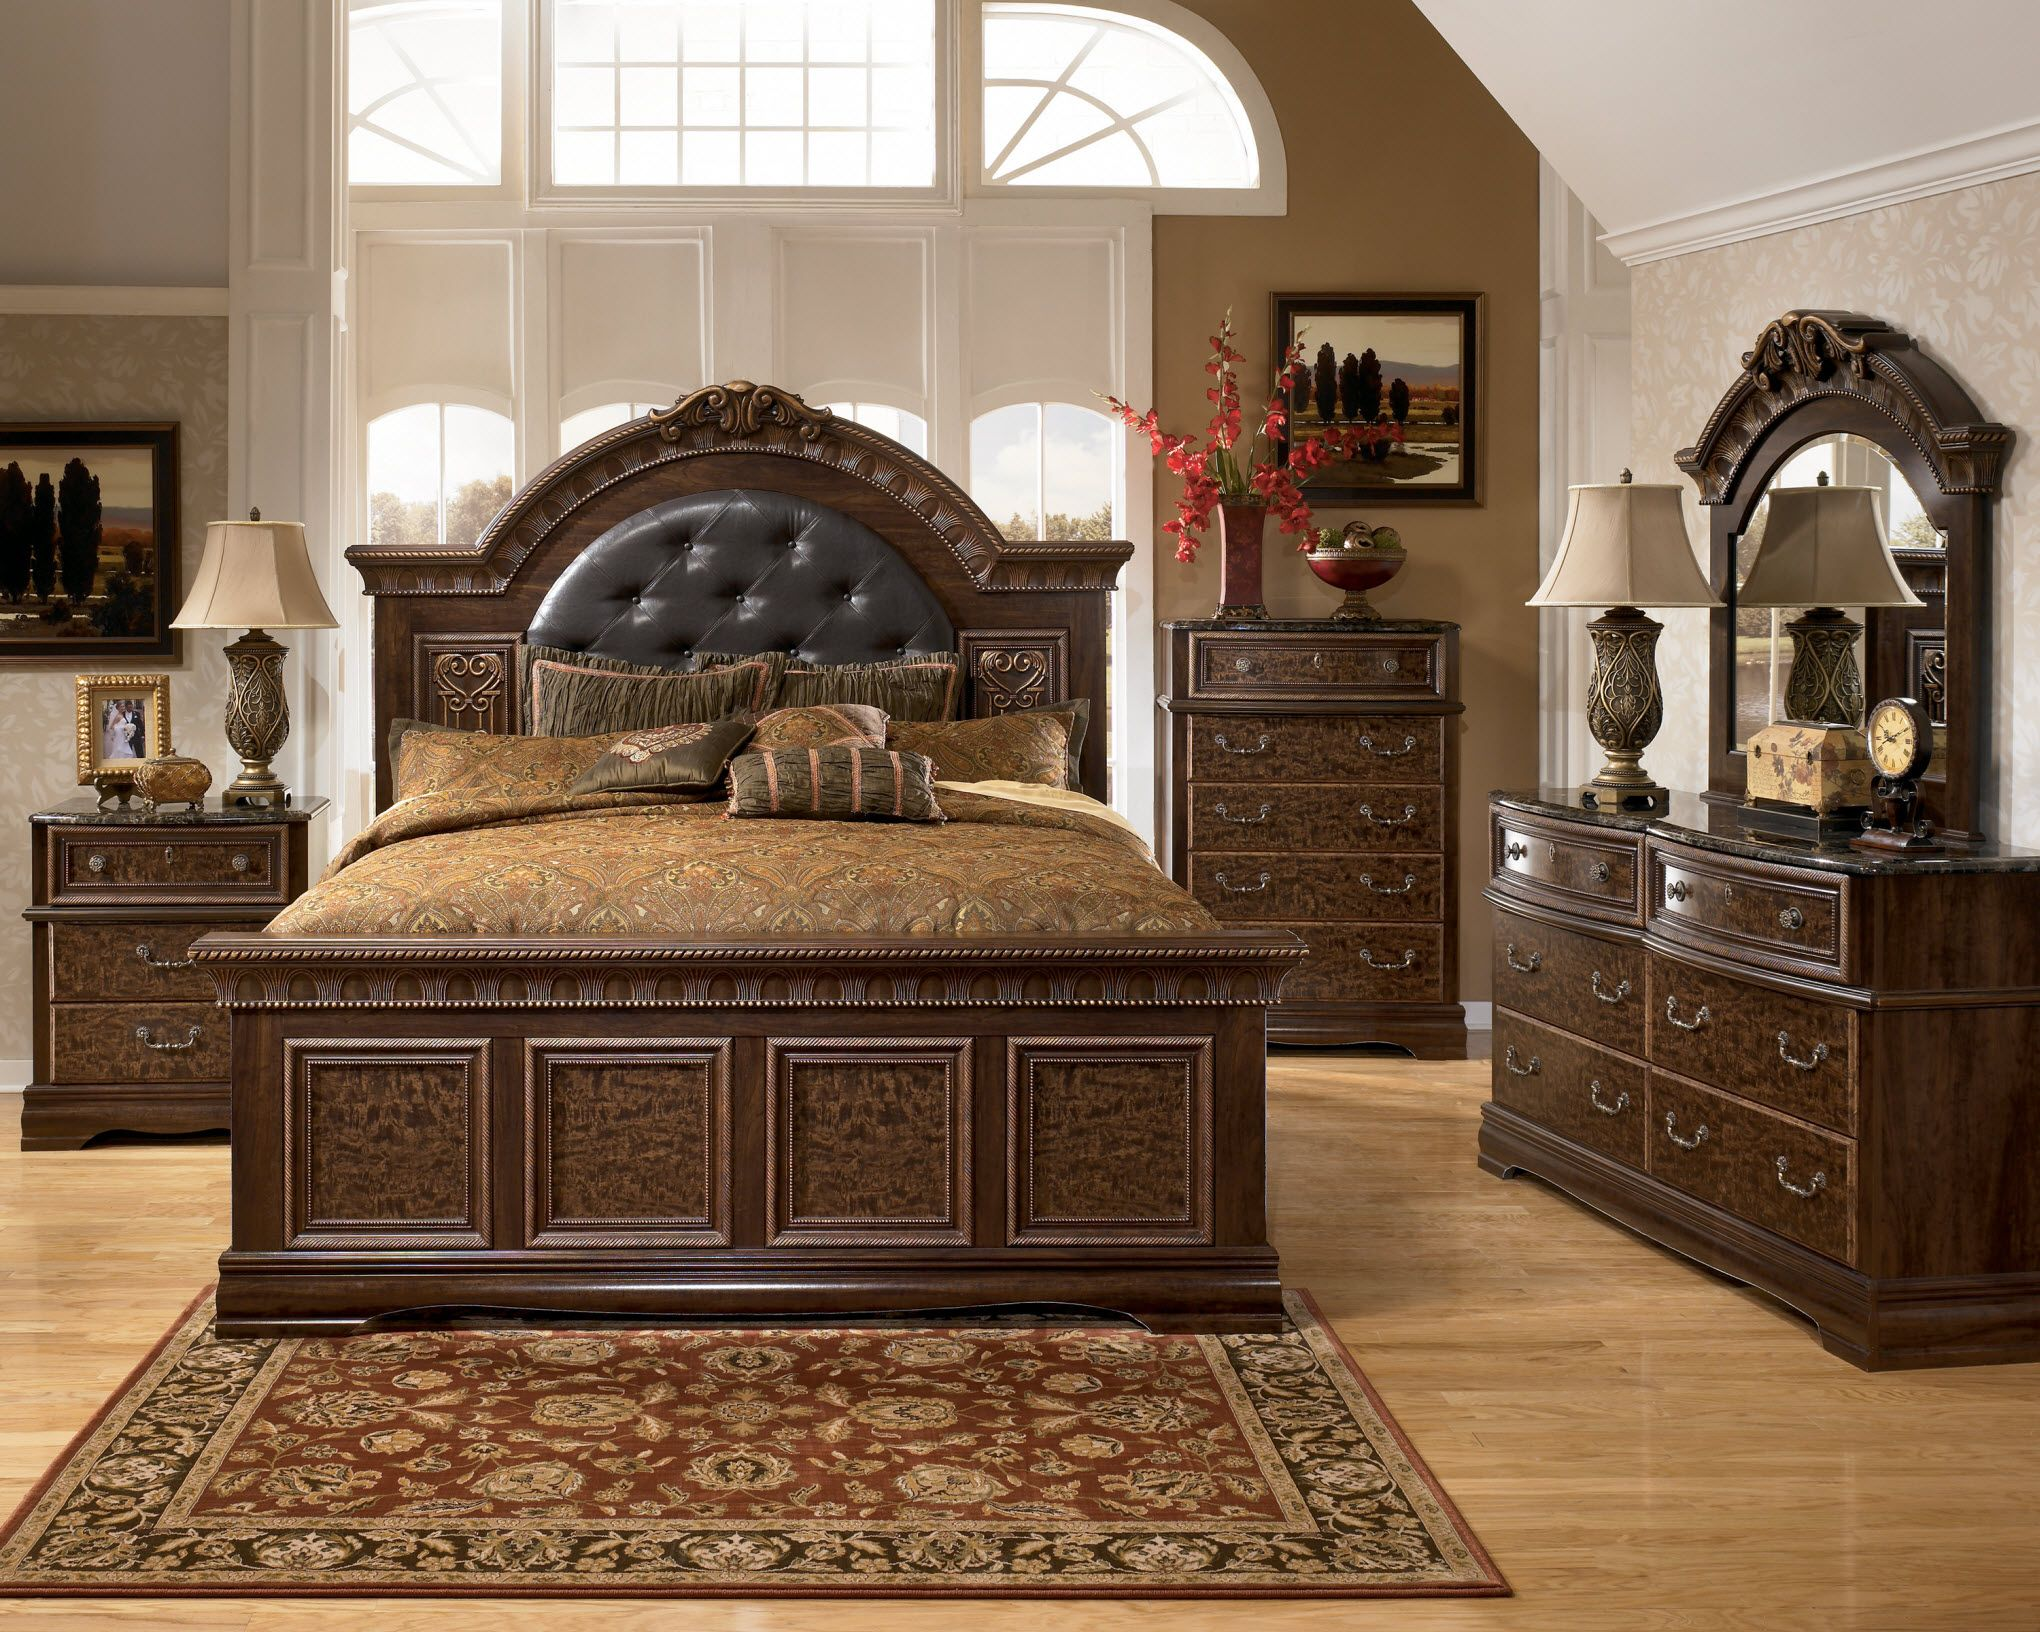 Sale On Bedroom Furniture